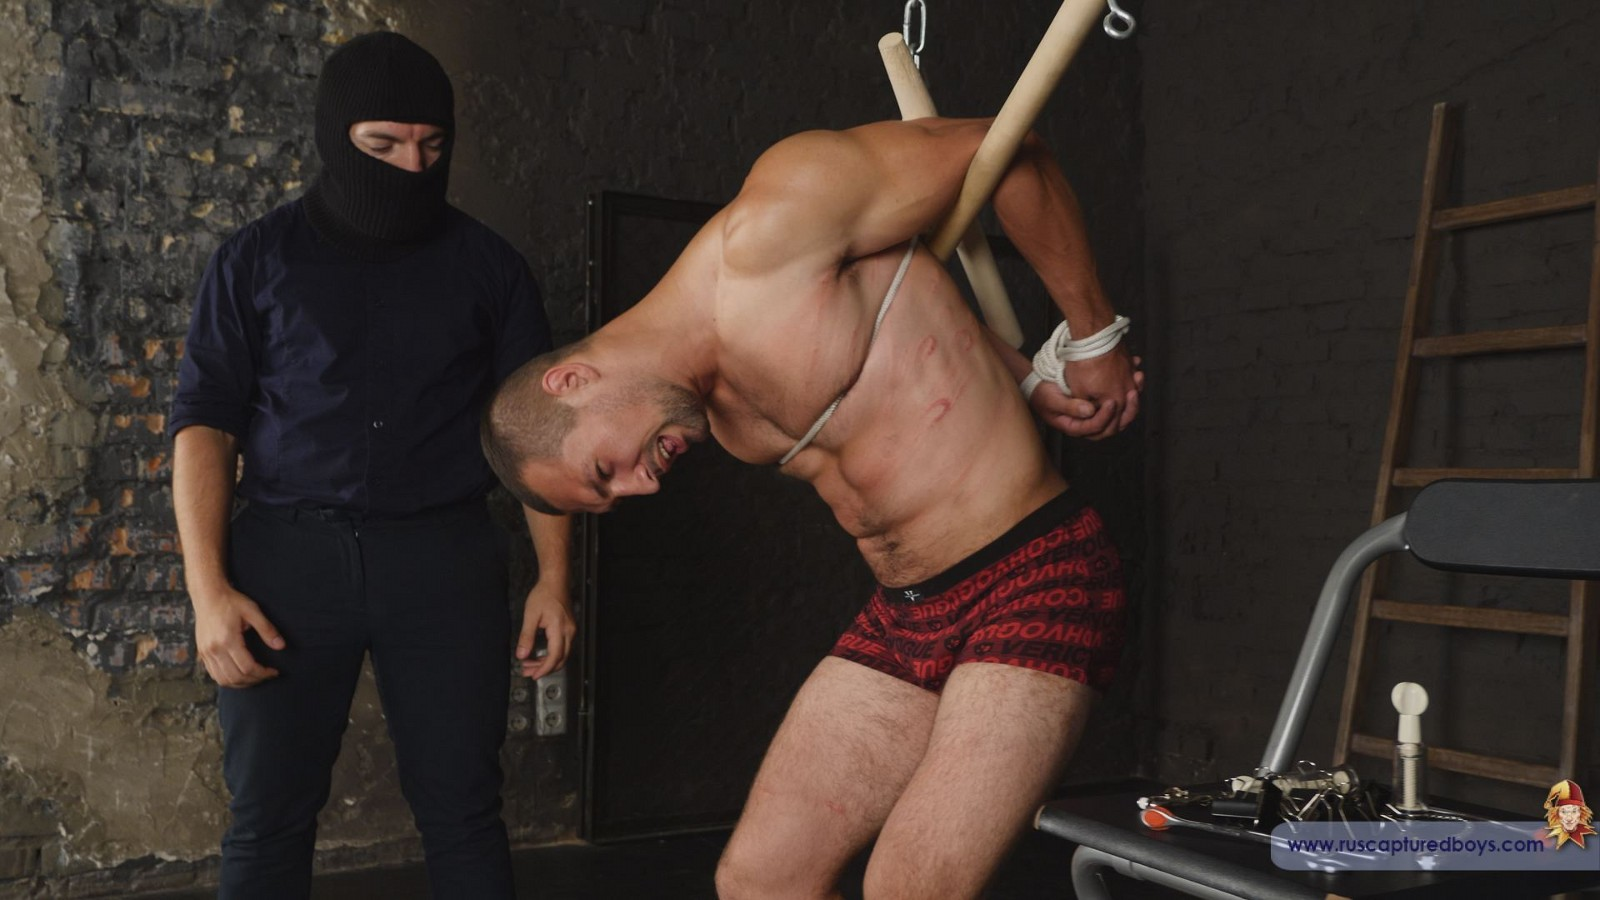 Vitaly gets tied up and tortured in Russia